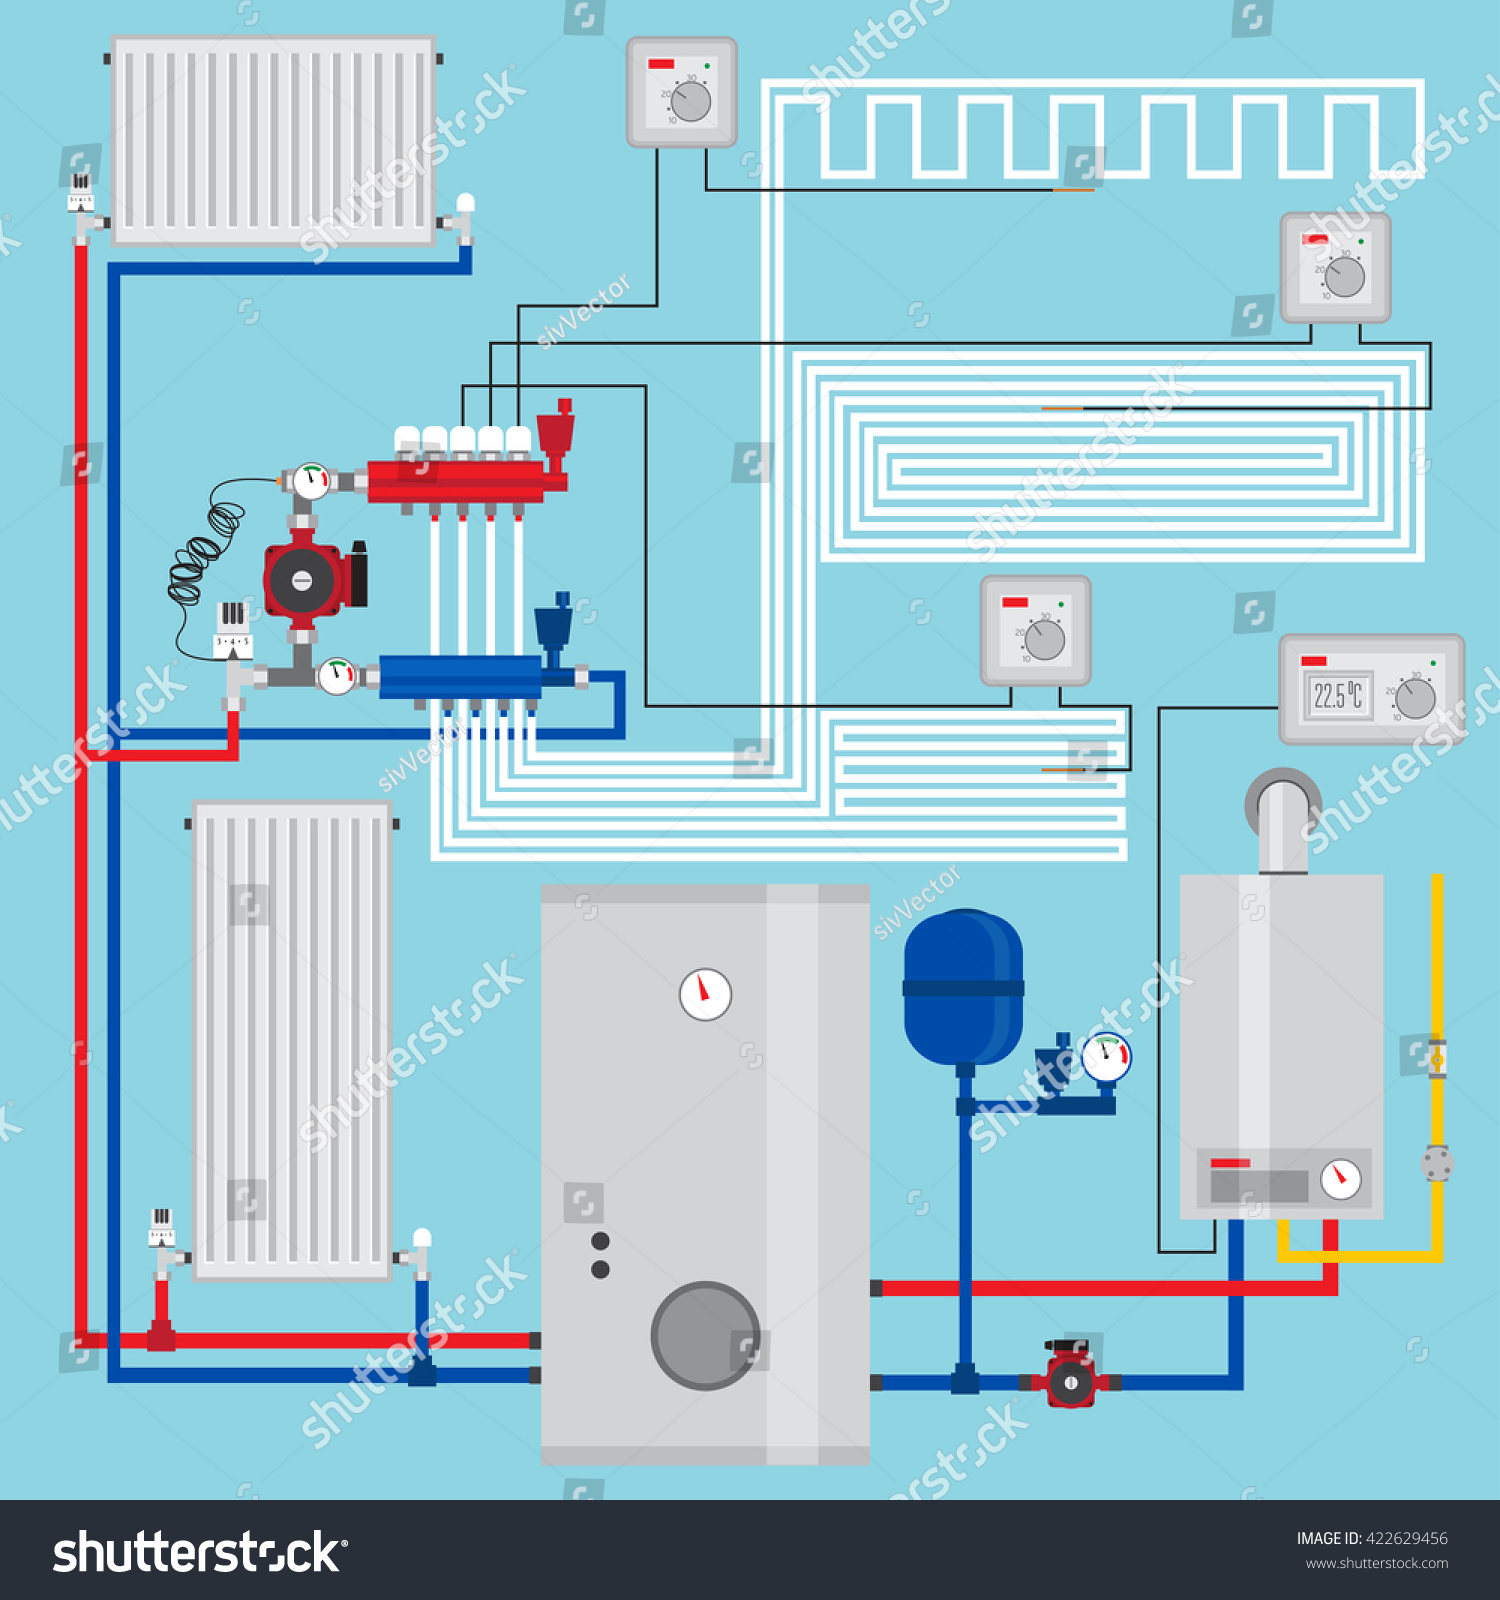 Smart Energysaving Heating System Thermostats Smart Stock Vector ...